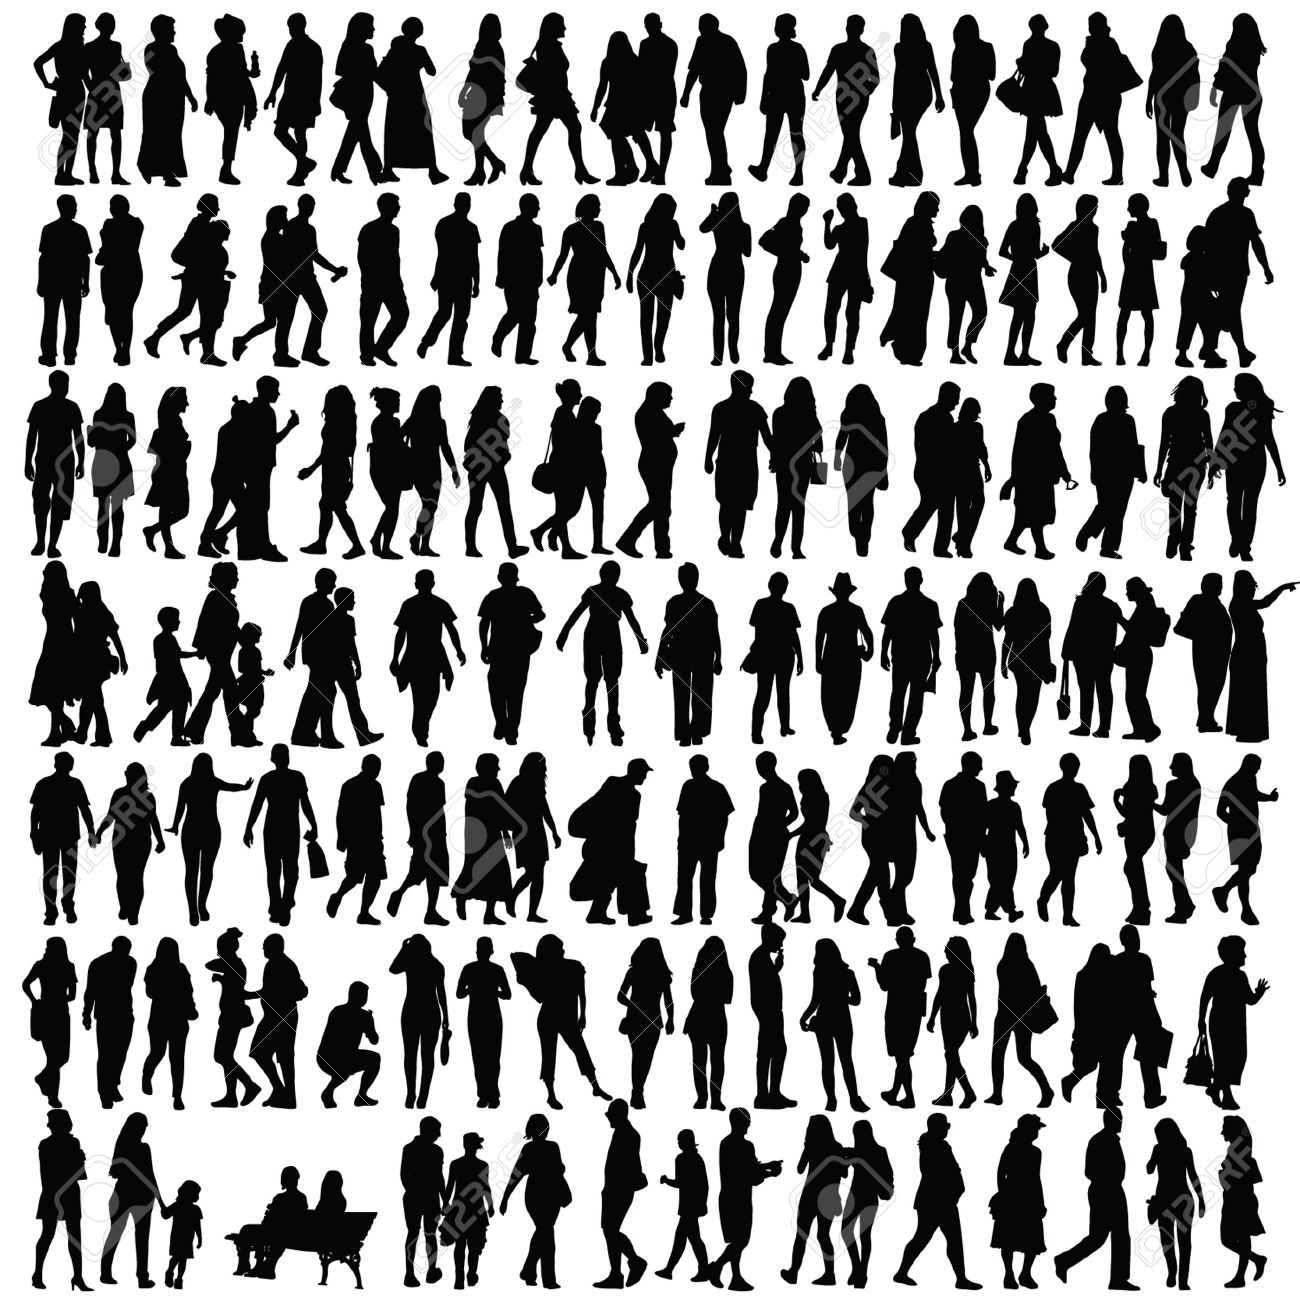 1300x1300 People Silhouette Black Vector Girl And Man Walking Illustration